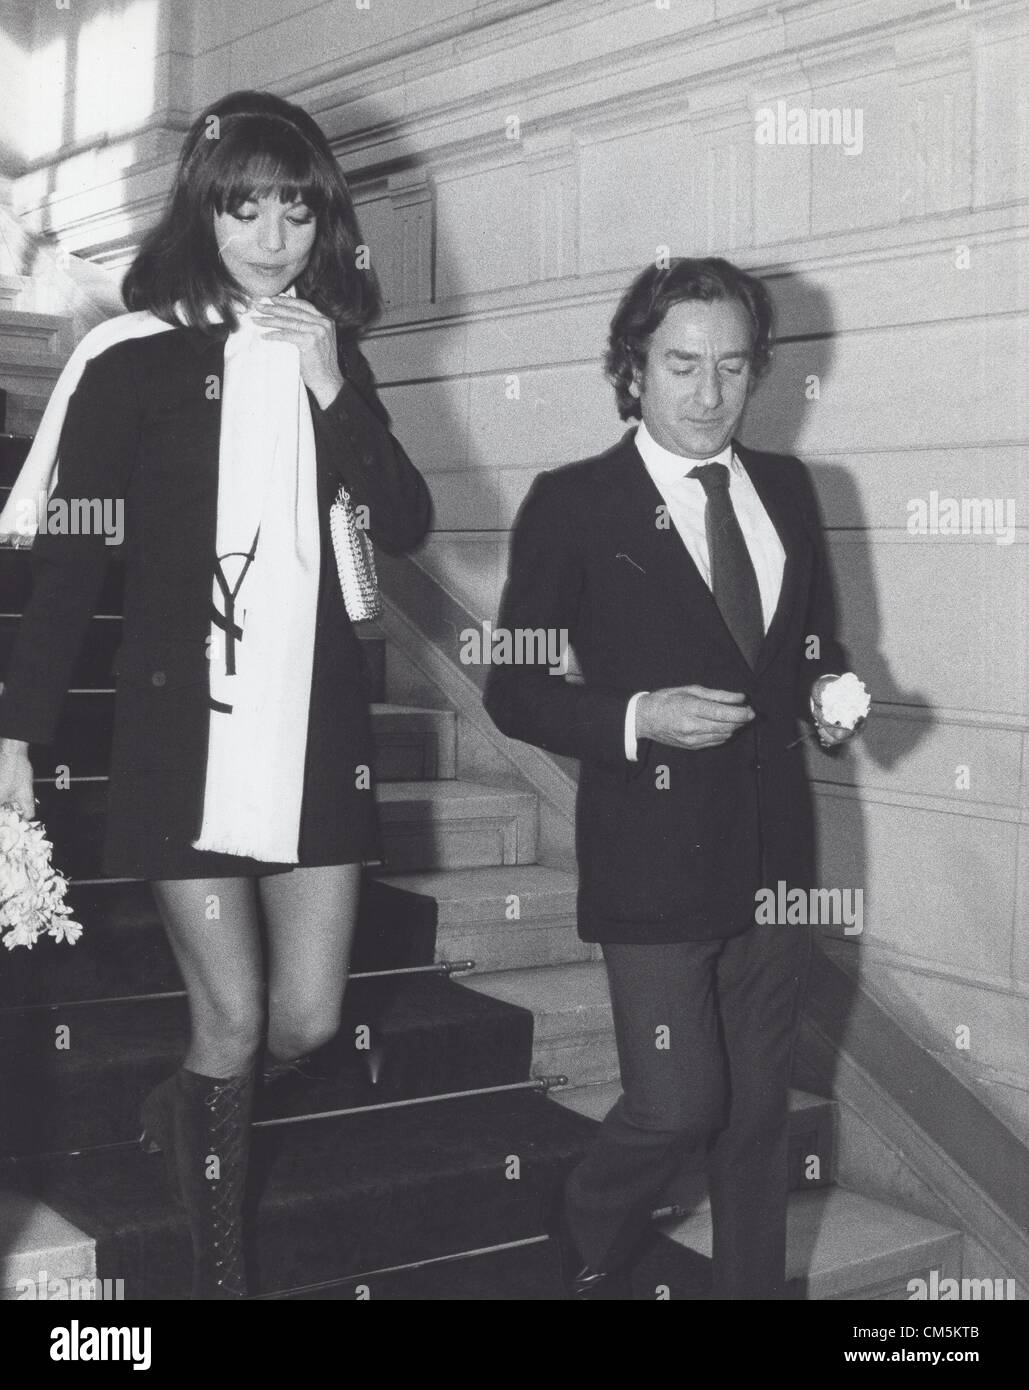 Elsa martinelli with furniture designer willy rizzo for Mobili willy rizzo